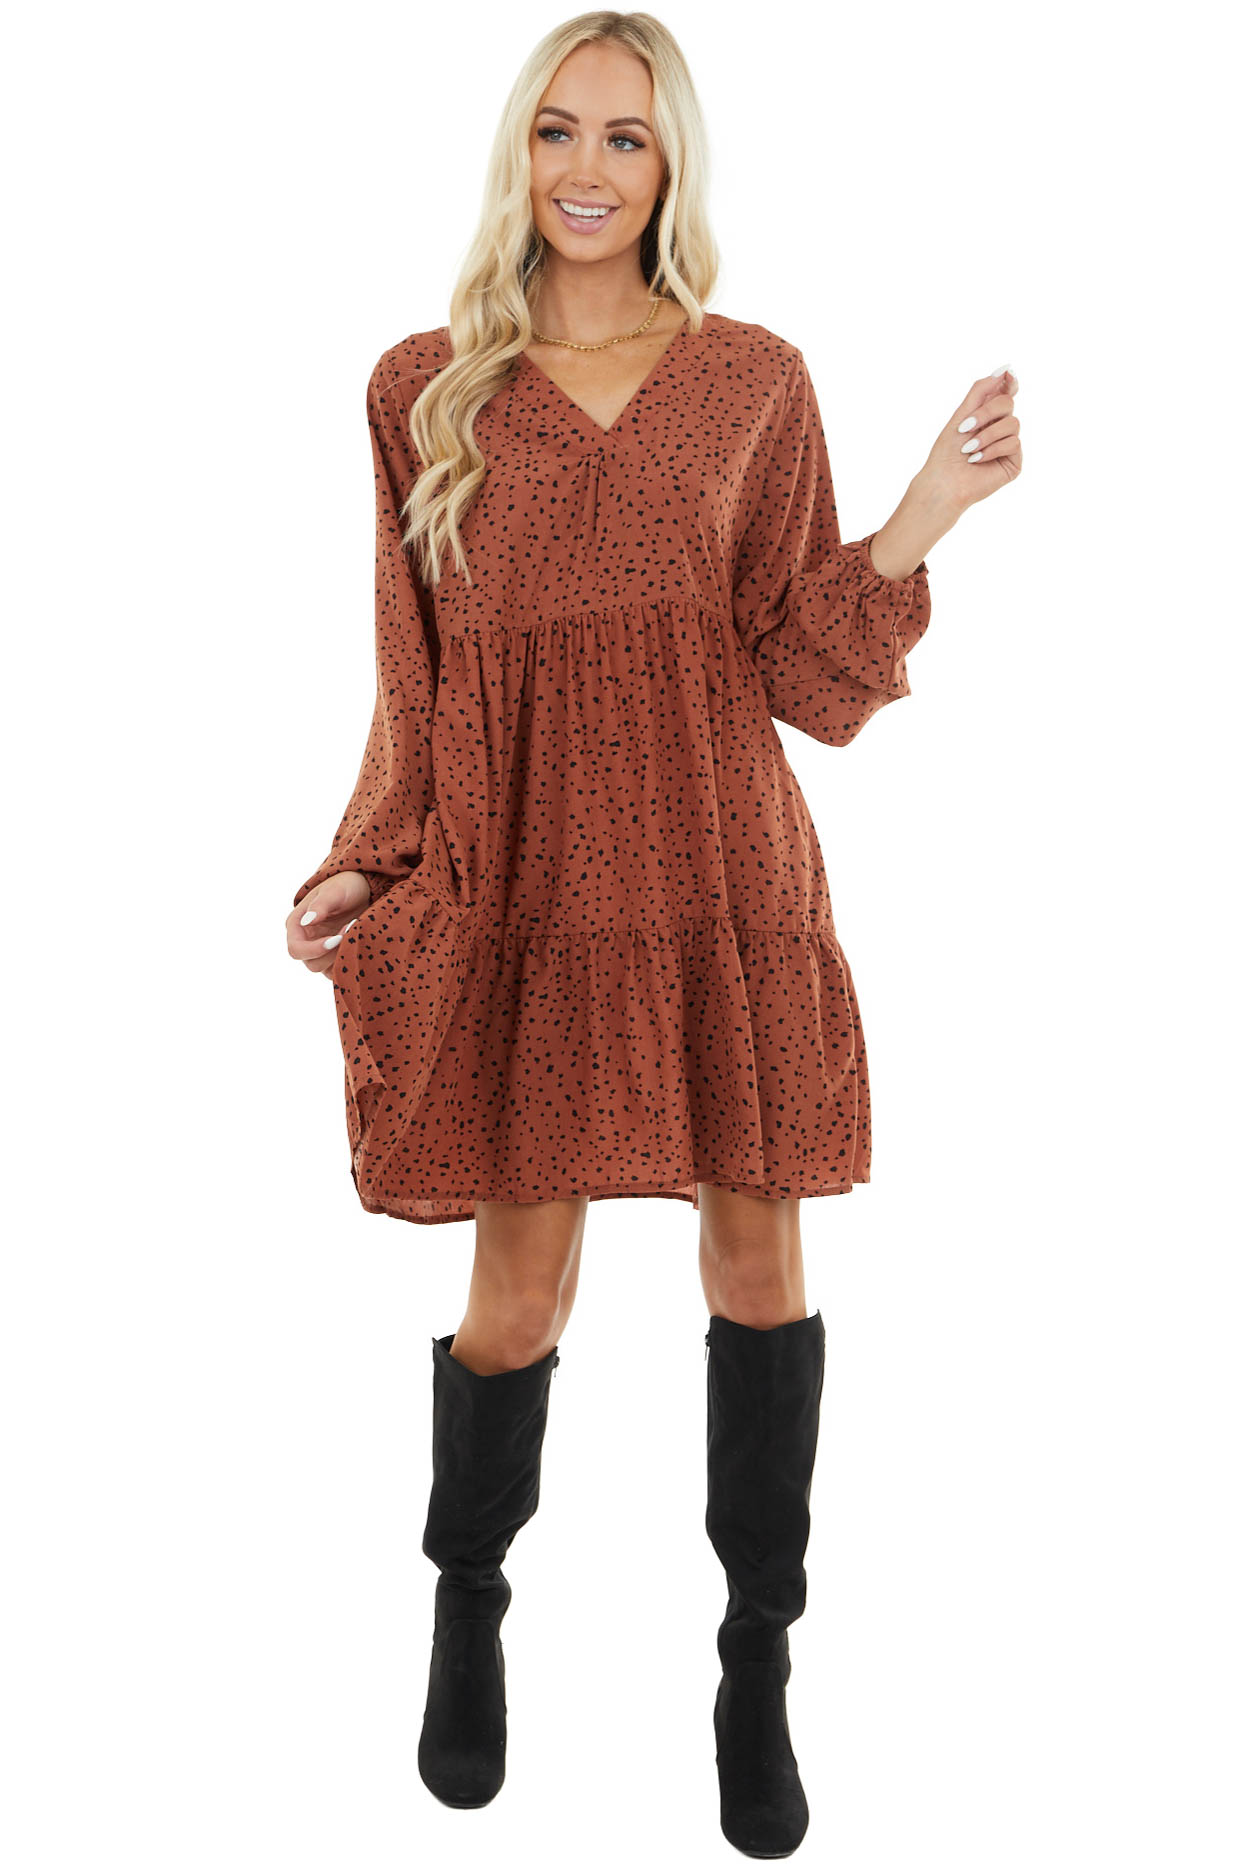 Terracotta Cheetah Print Tiered Dress with Bubble Sleeves